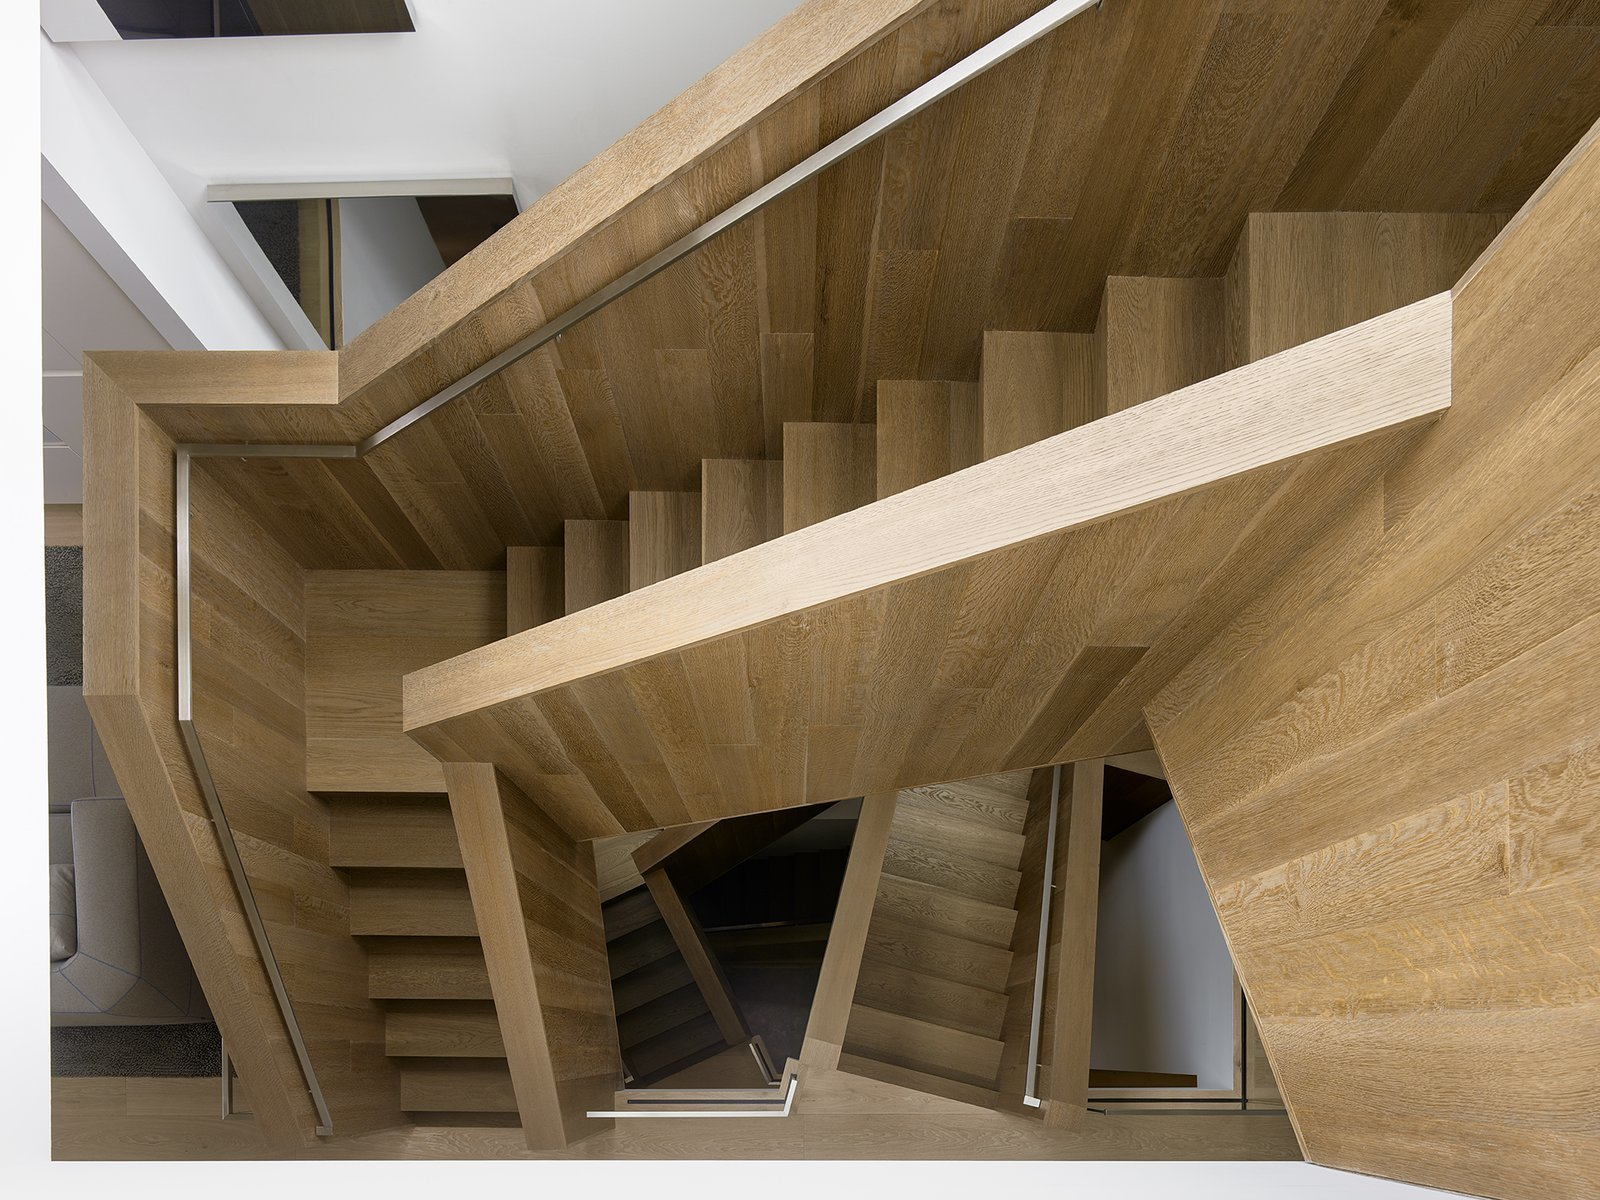 After: Alamo Square Residence Top floor bird's eye view of geometric staircase with engineered oak tread and railing